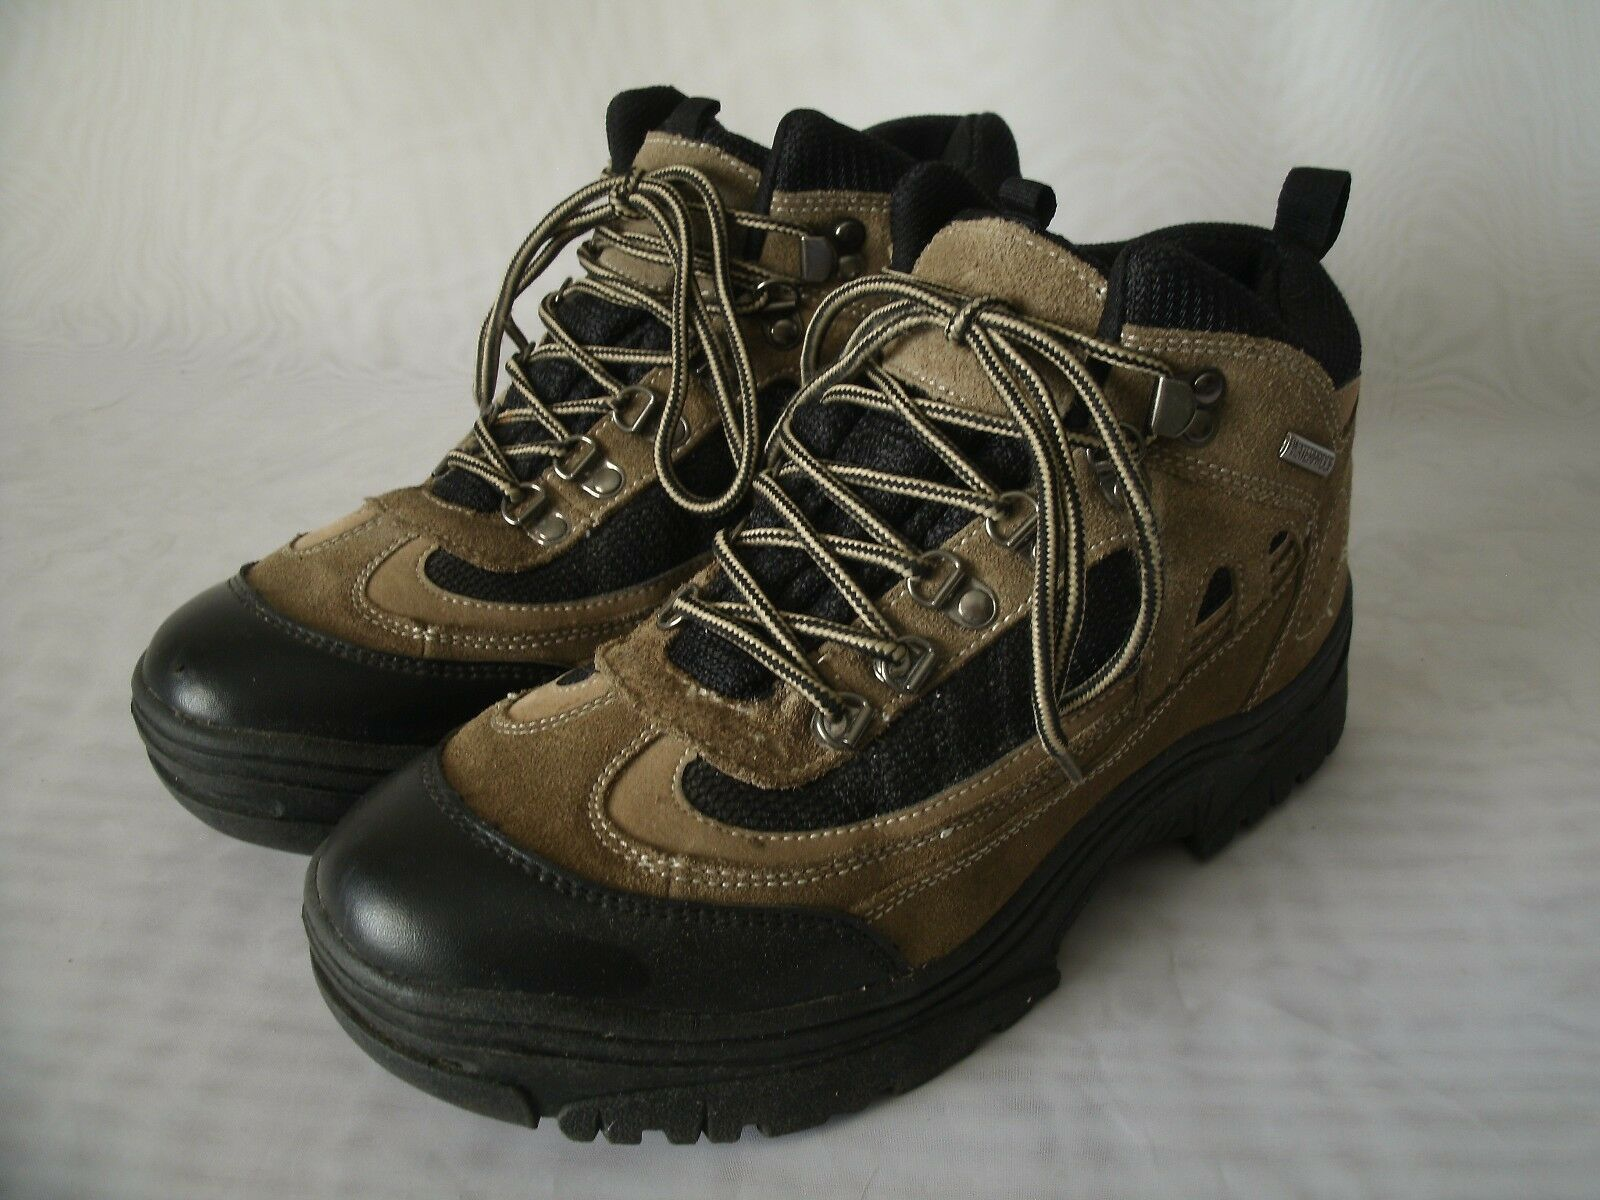 ITASCA MID BROWN LEATHER WATERPROOF HIKING BOOTS   SIZE US 10   MEN'S